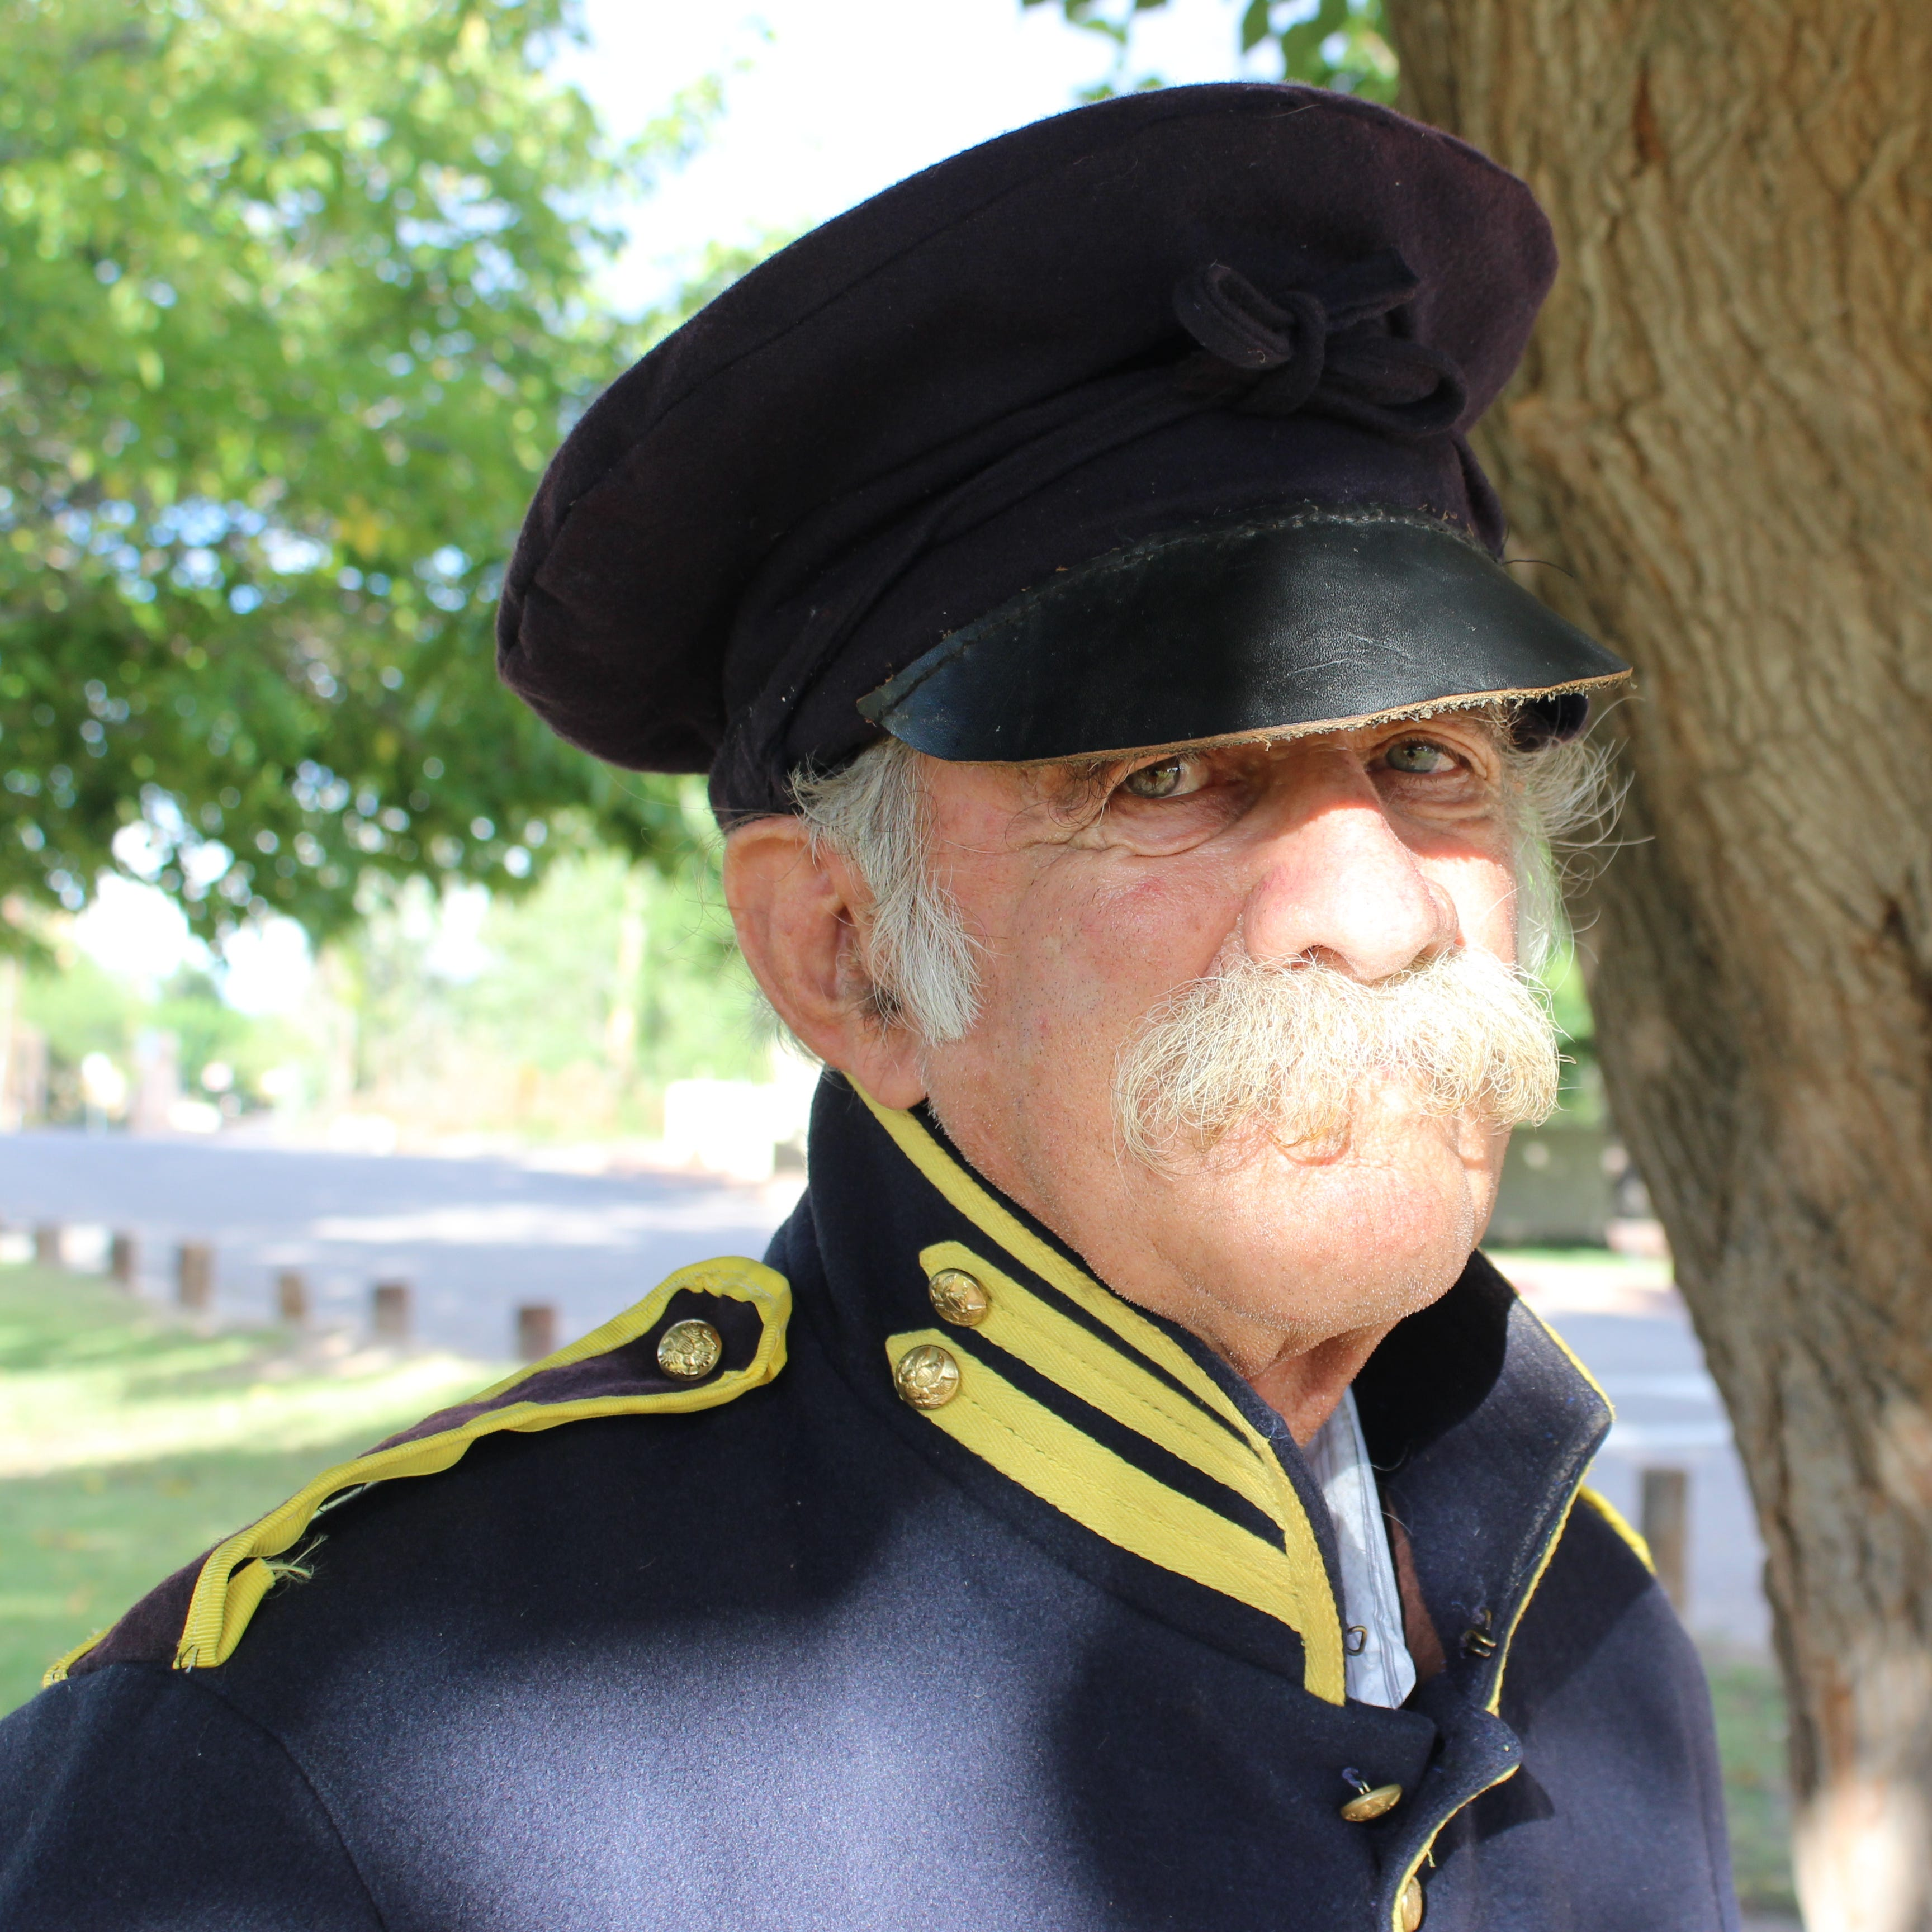 Experience Voices from the Past at Fort Selden